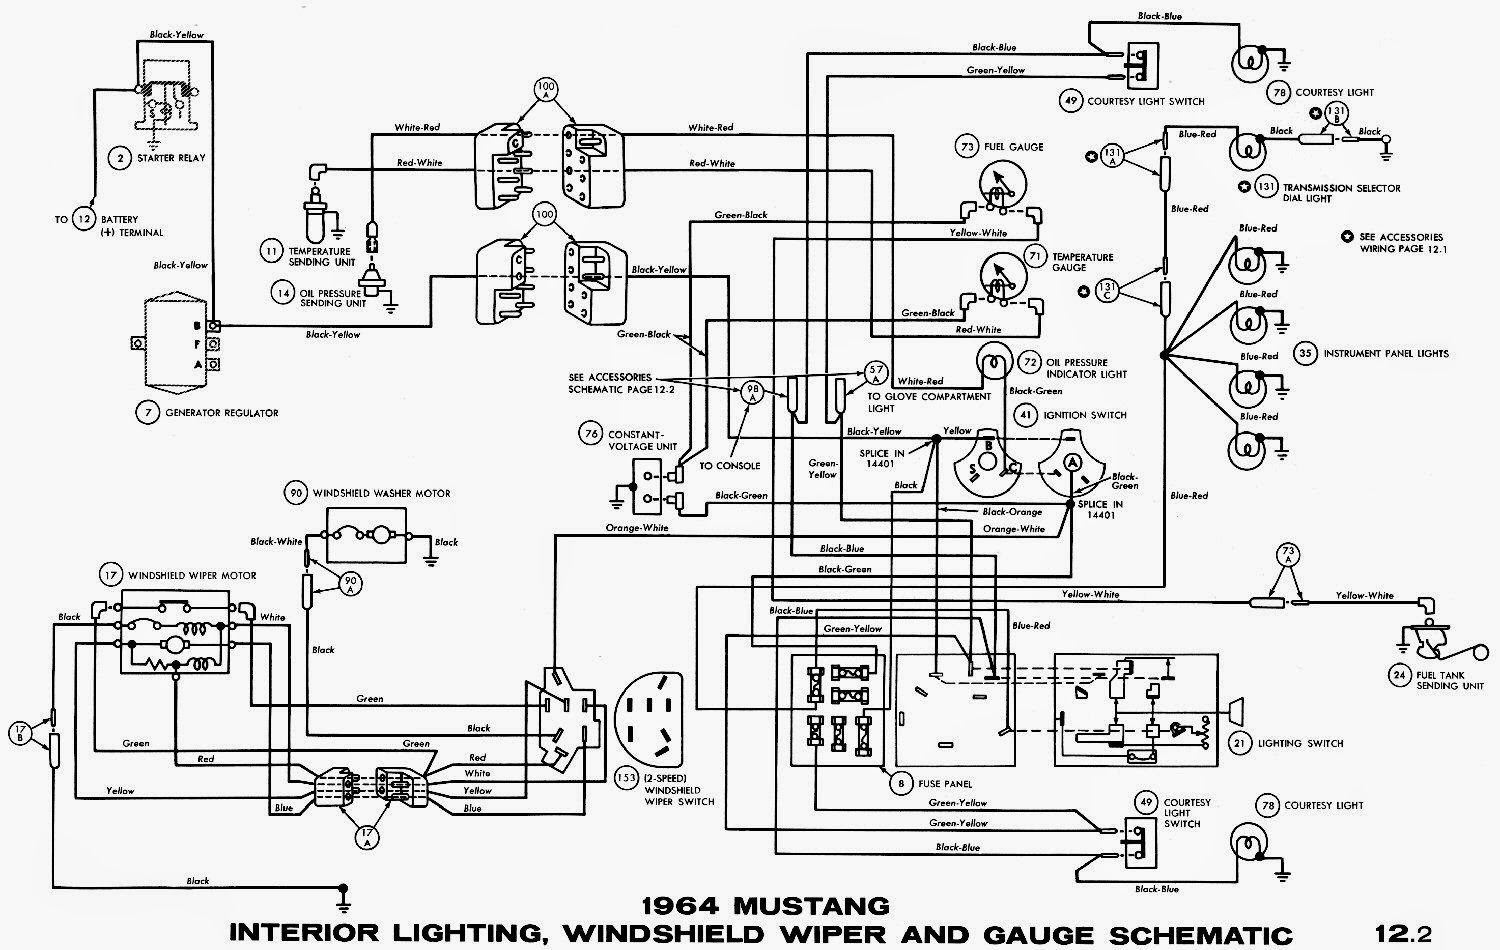 1969 Mustang Ignition Switch Wiring Diagram Gota Wiring Diagram